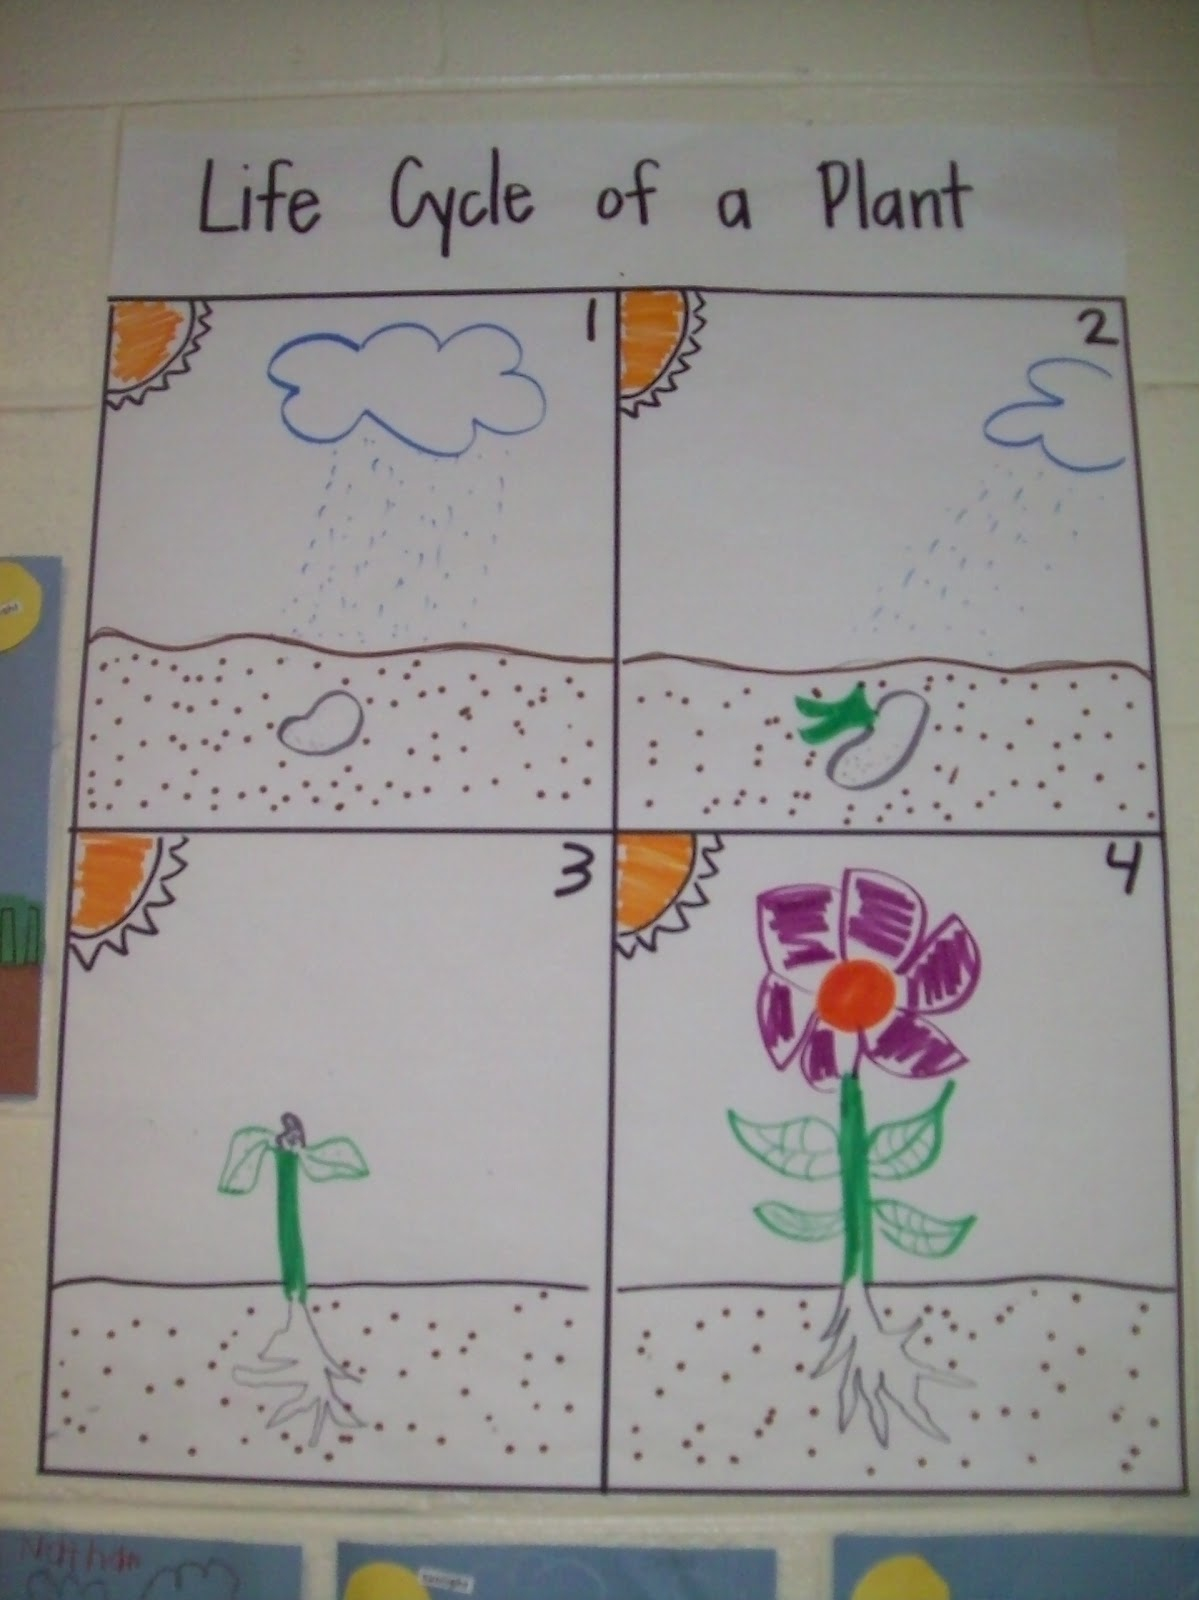 Ms. Hall's illustration of the life cycle